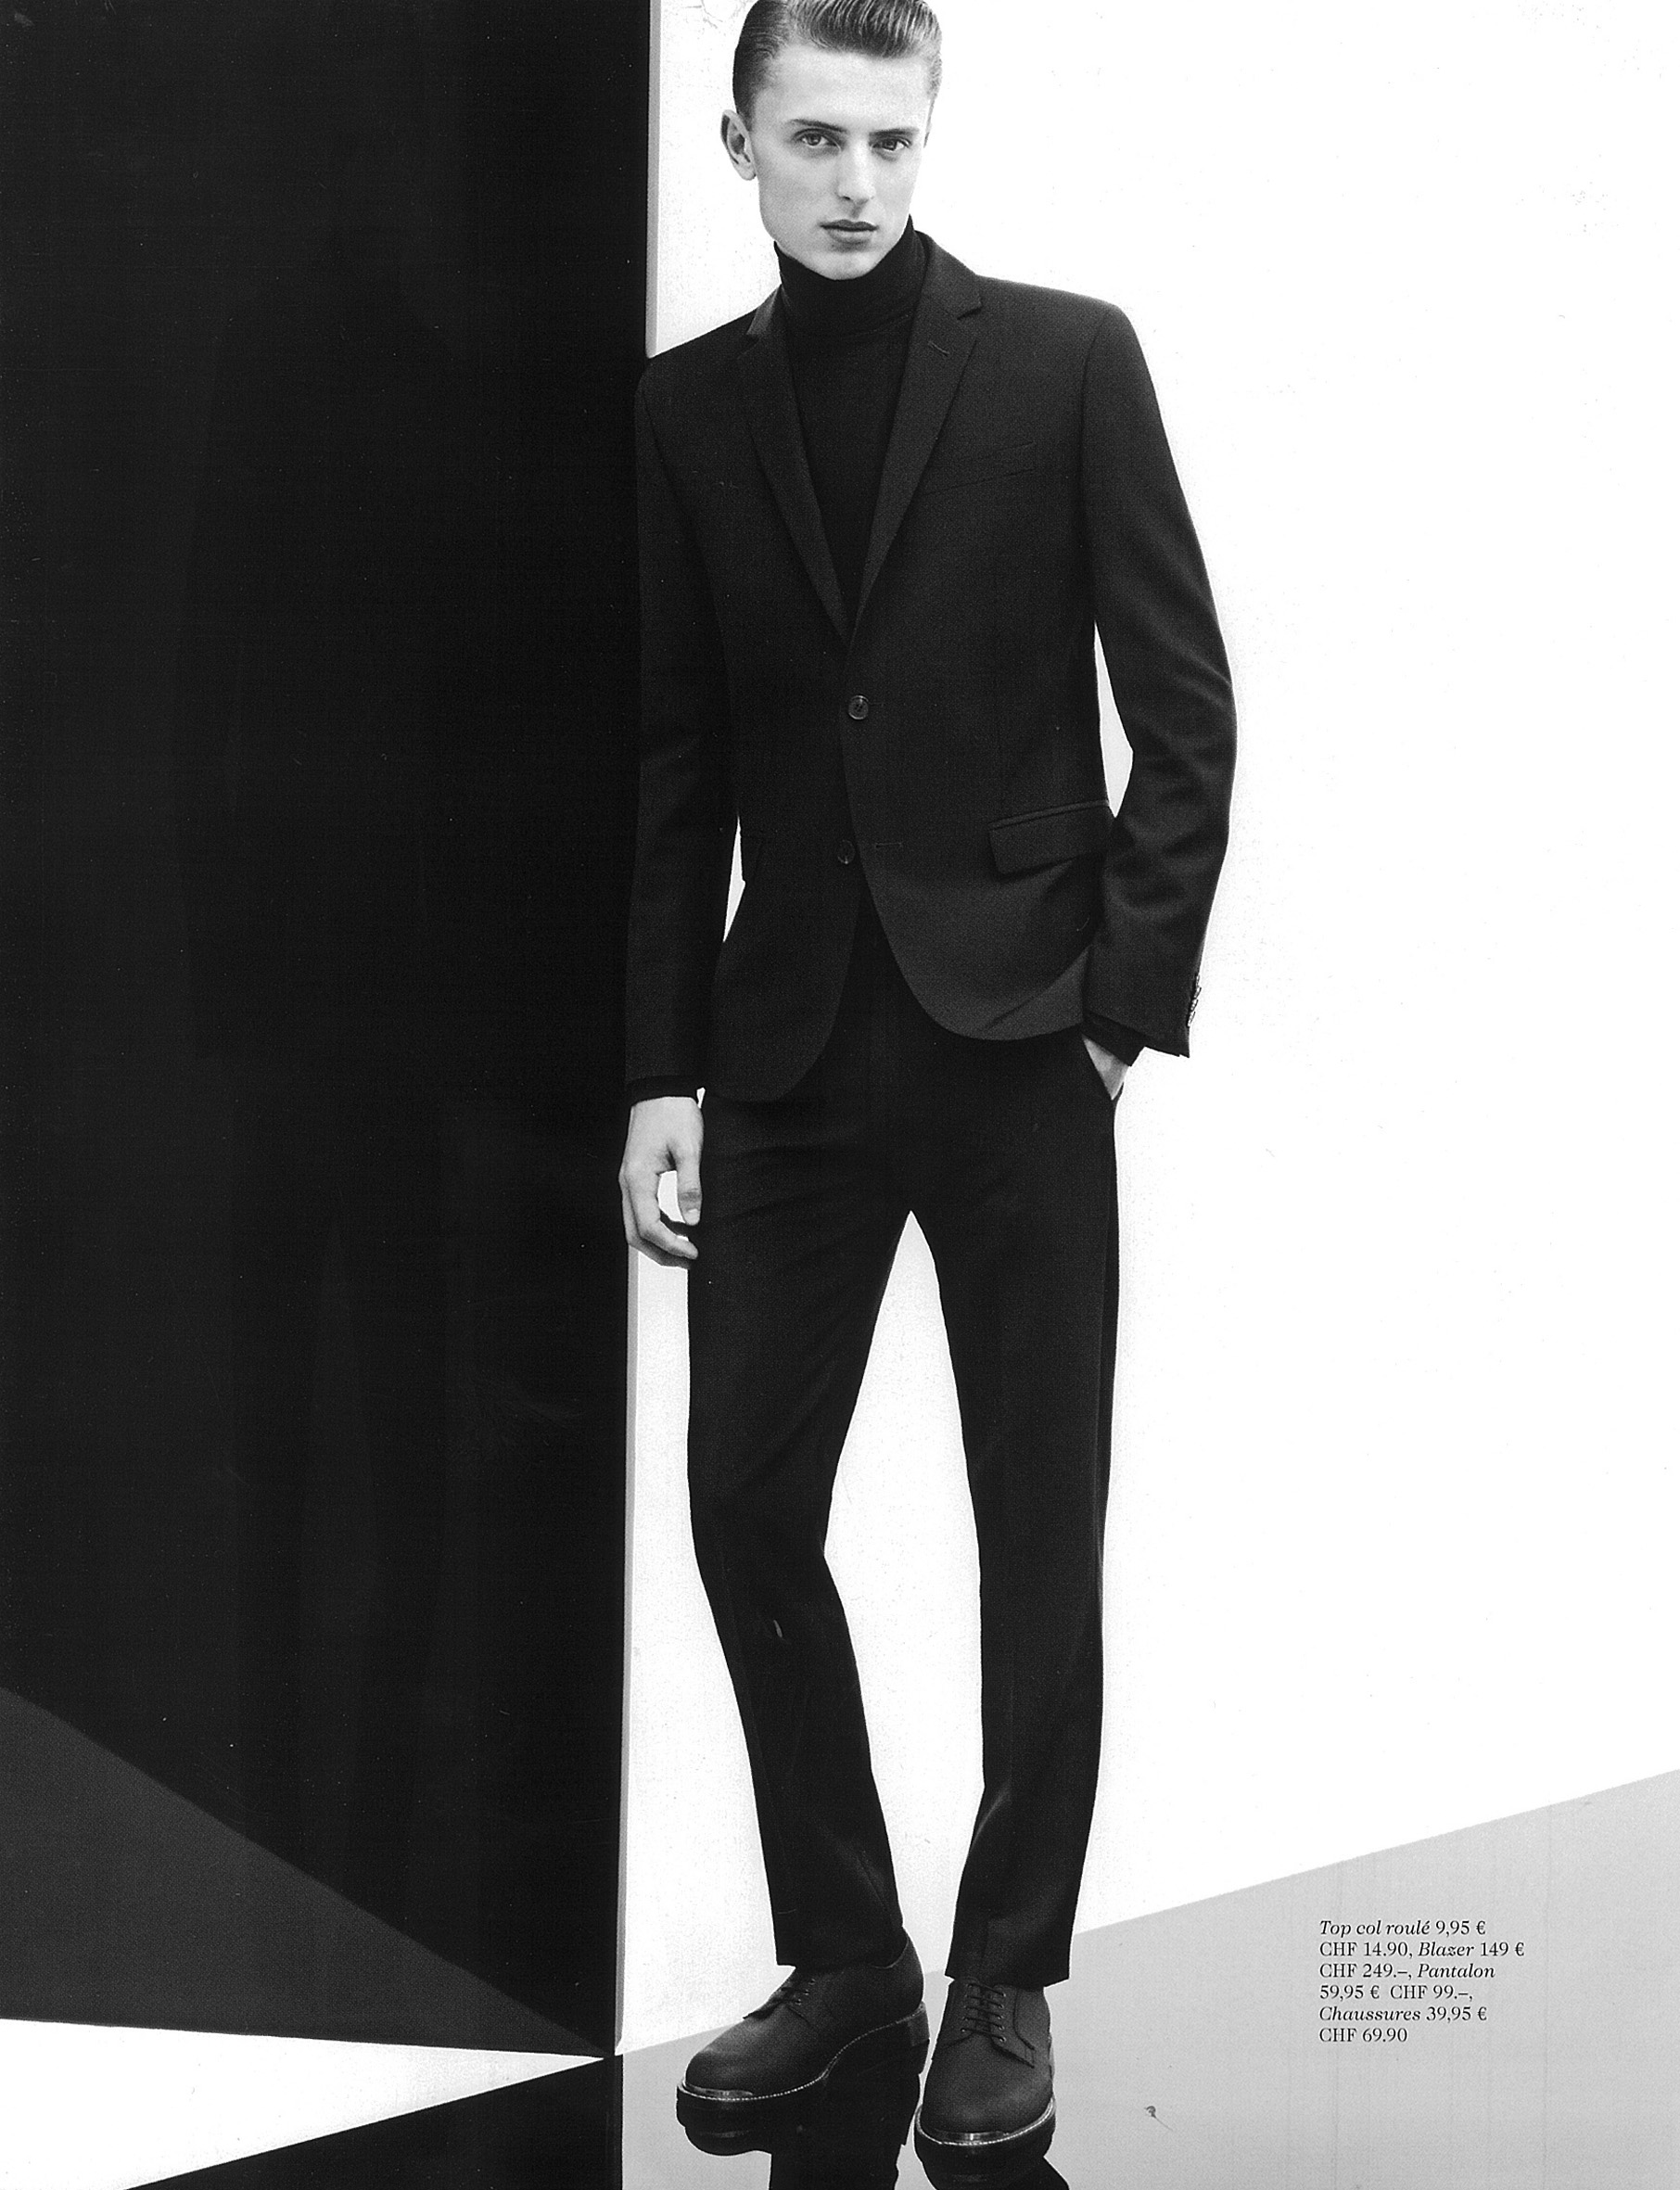 Max Rendell & Robin Ahrens are 'Men in Black' for H&M Winter 2012 Magazine